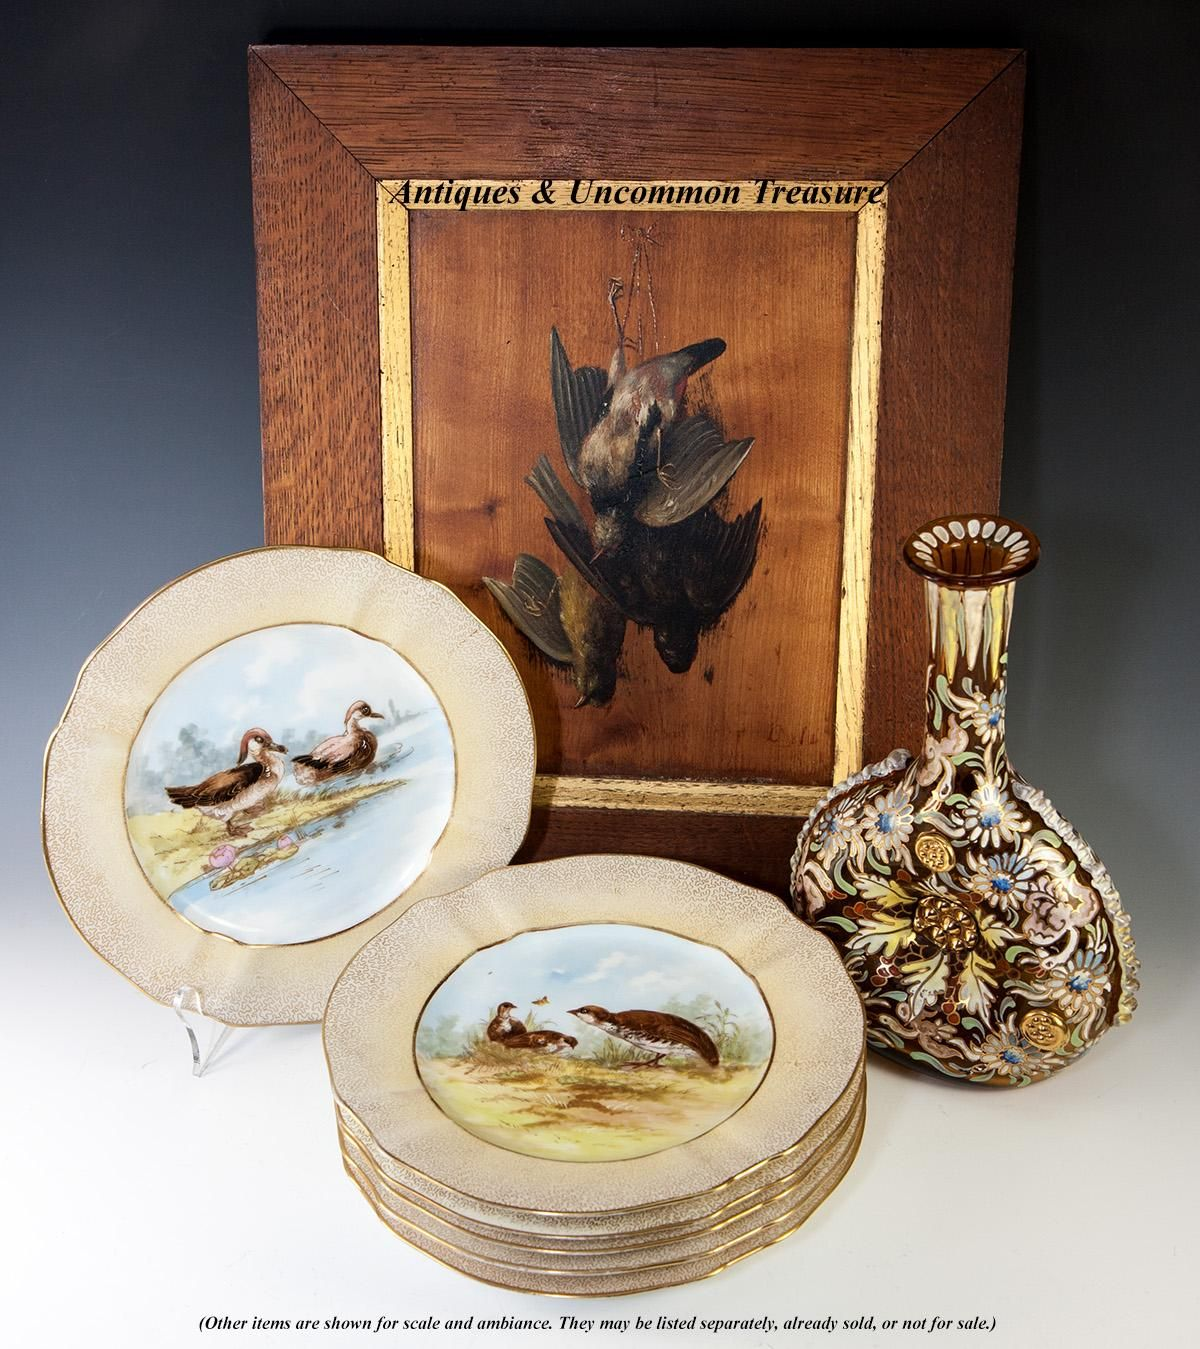 A beautiful set of hand painted fine old Limoges plates, from the famed maker, M. Redon. Ii've long been a fan of this maker and have numerous pieces